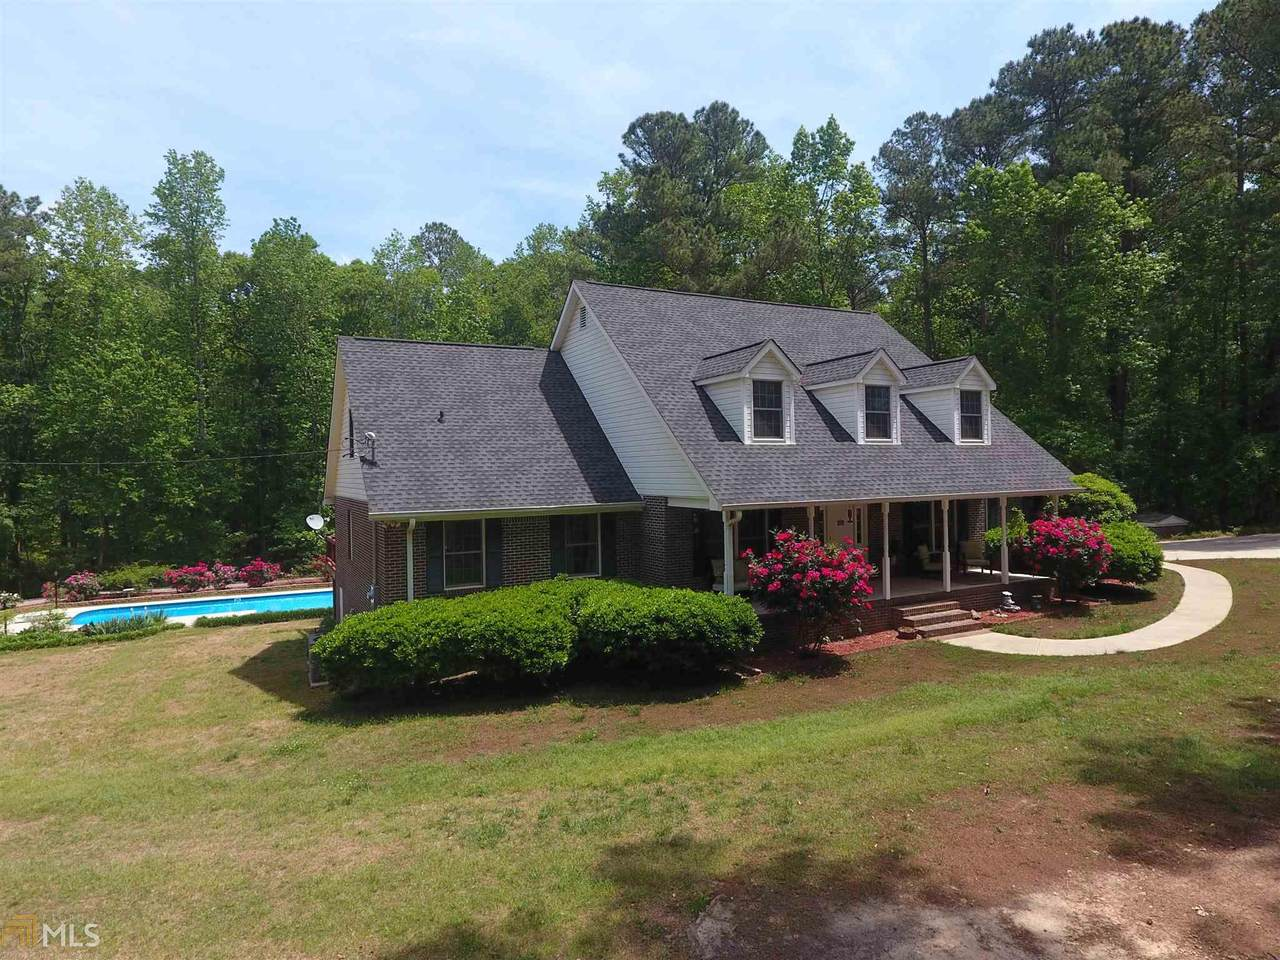 441 Campbell Rd - Photo 1